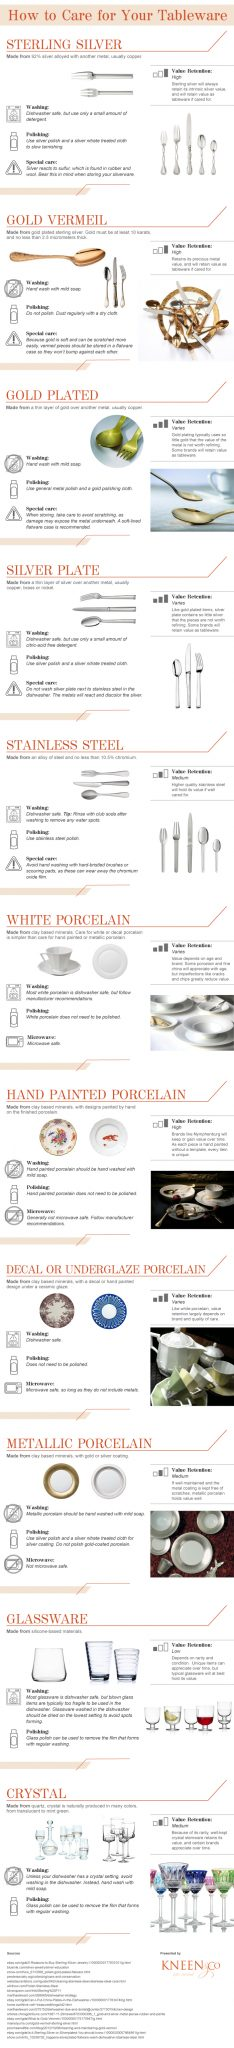 tableware-care-guide-by-kneenandco delectableideas